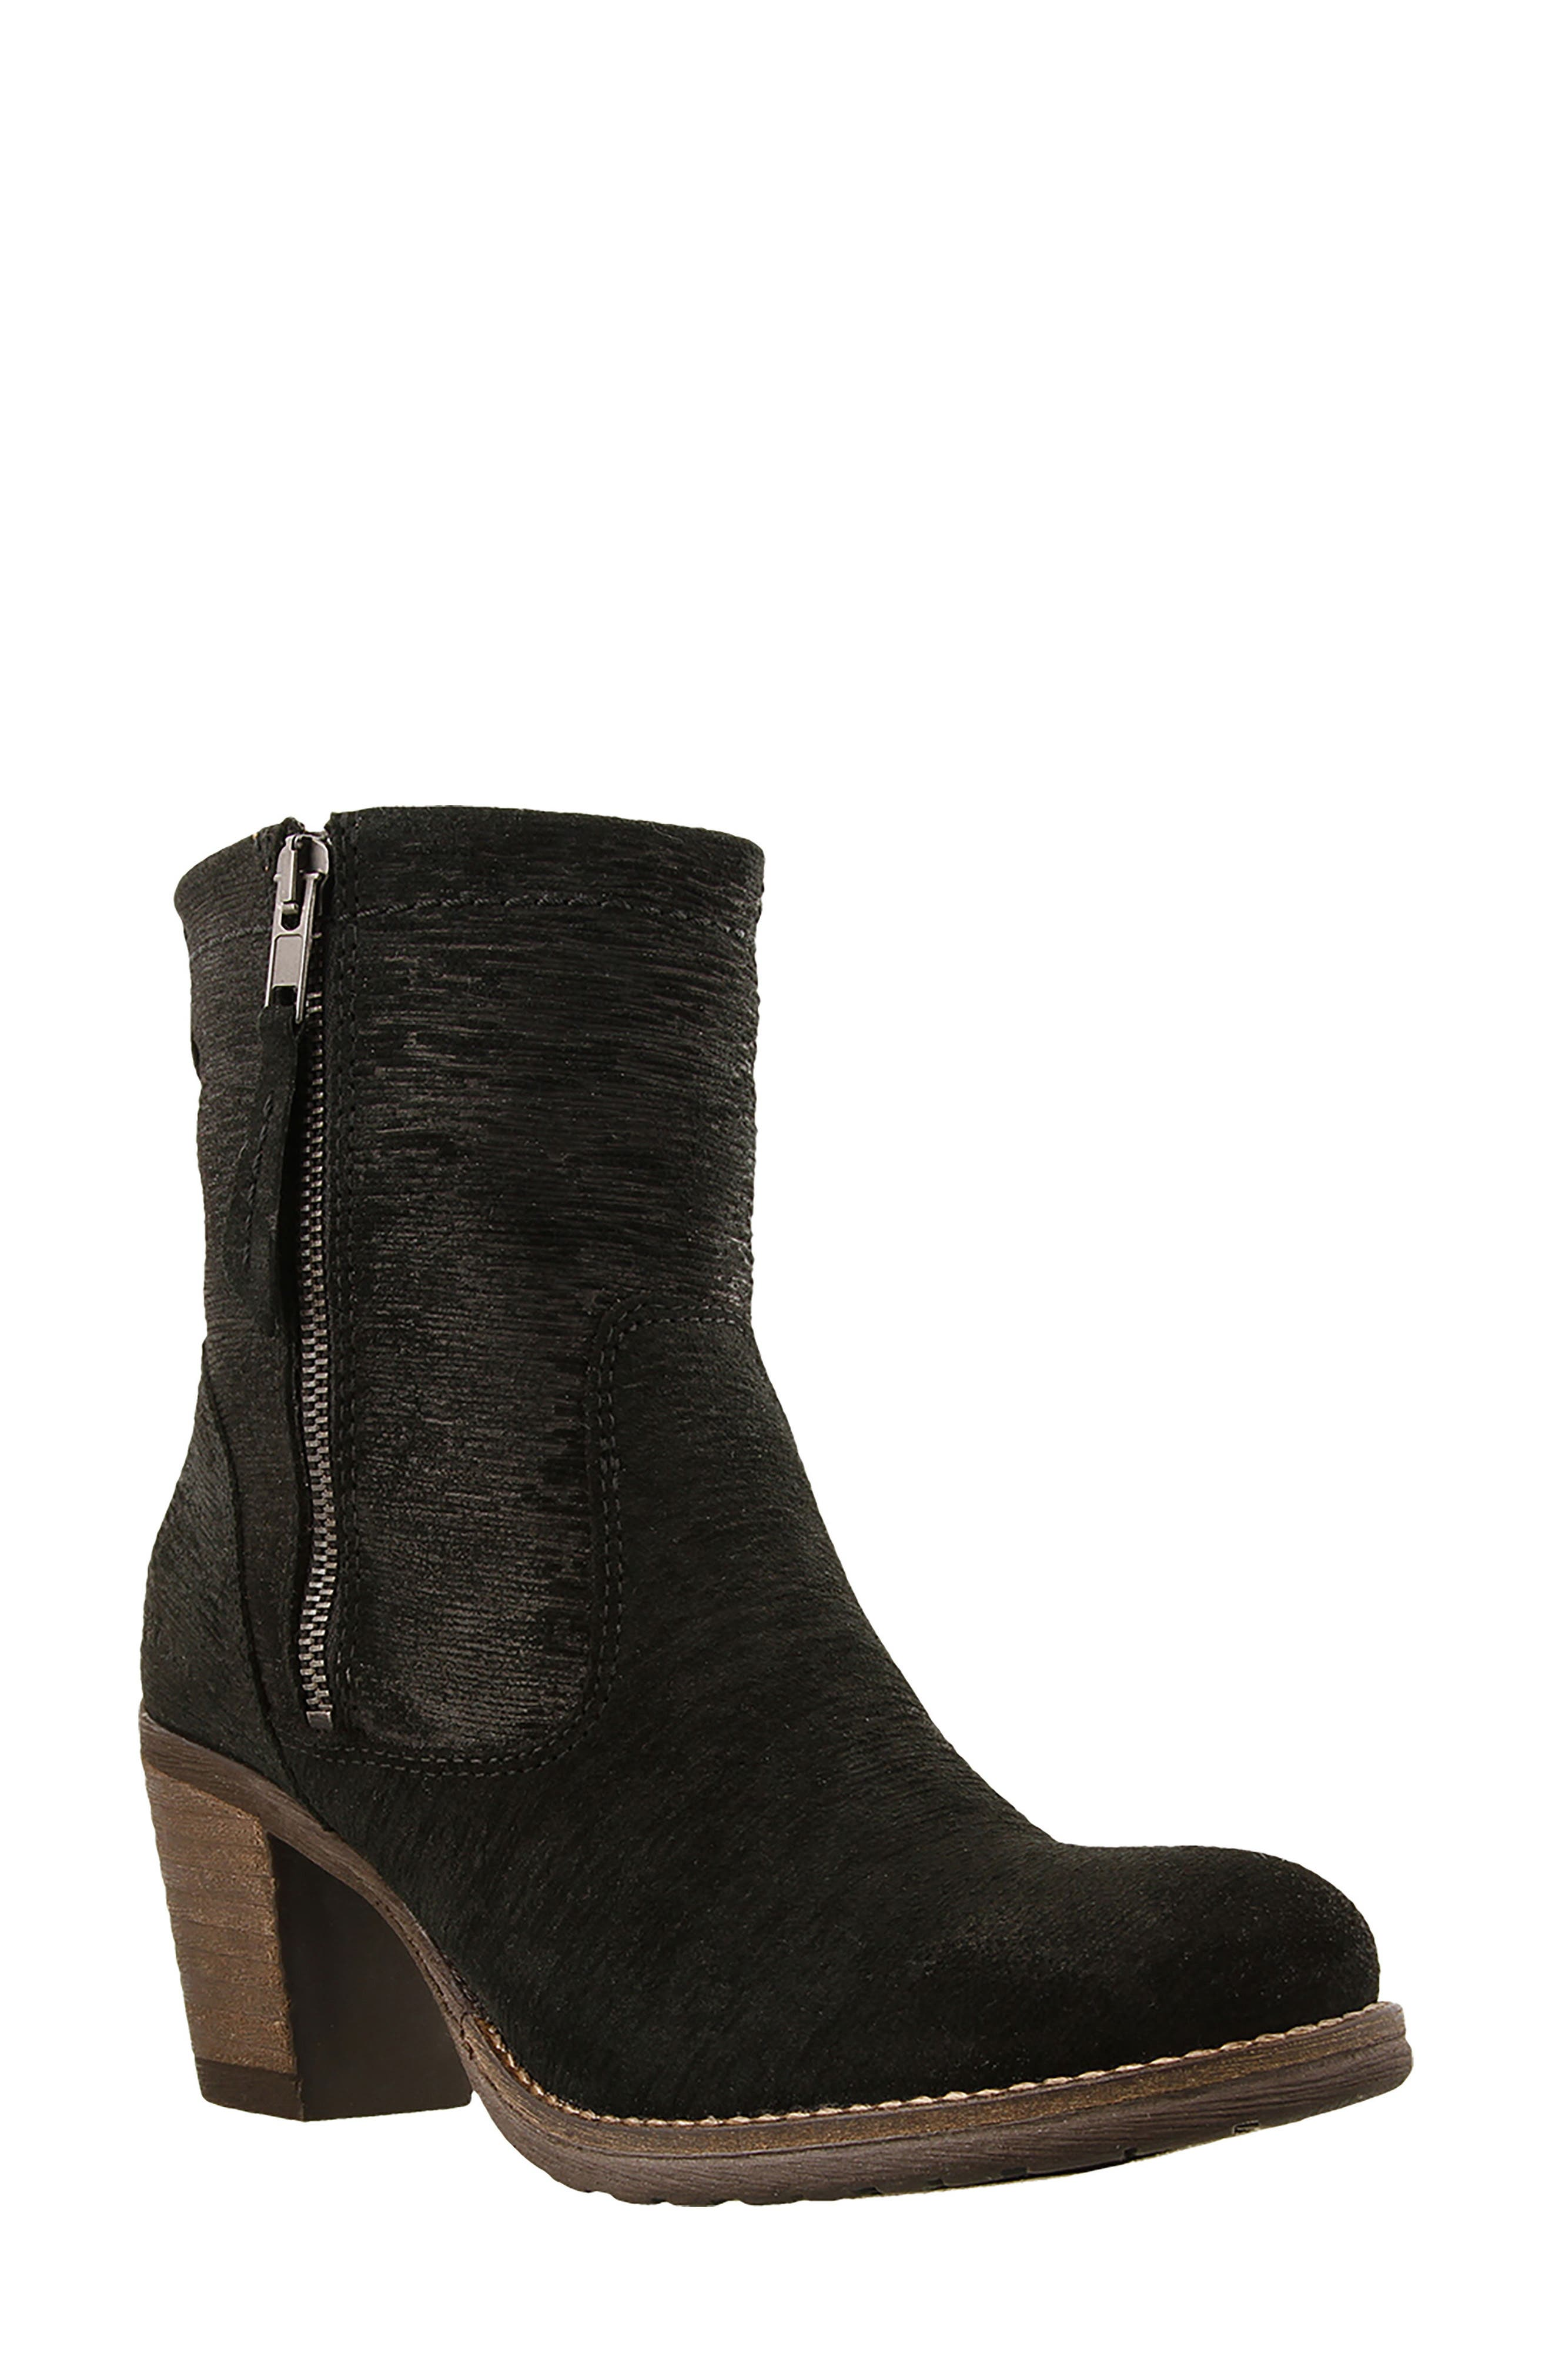 Shaka 2 Embossed Faux Fur Lined Bootie,                         Main,                         color, BLACK EMBOSS SUEDE